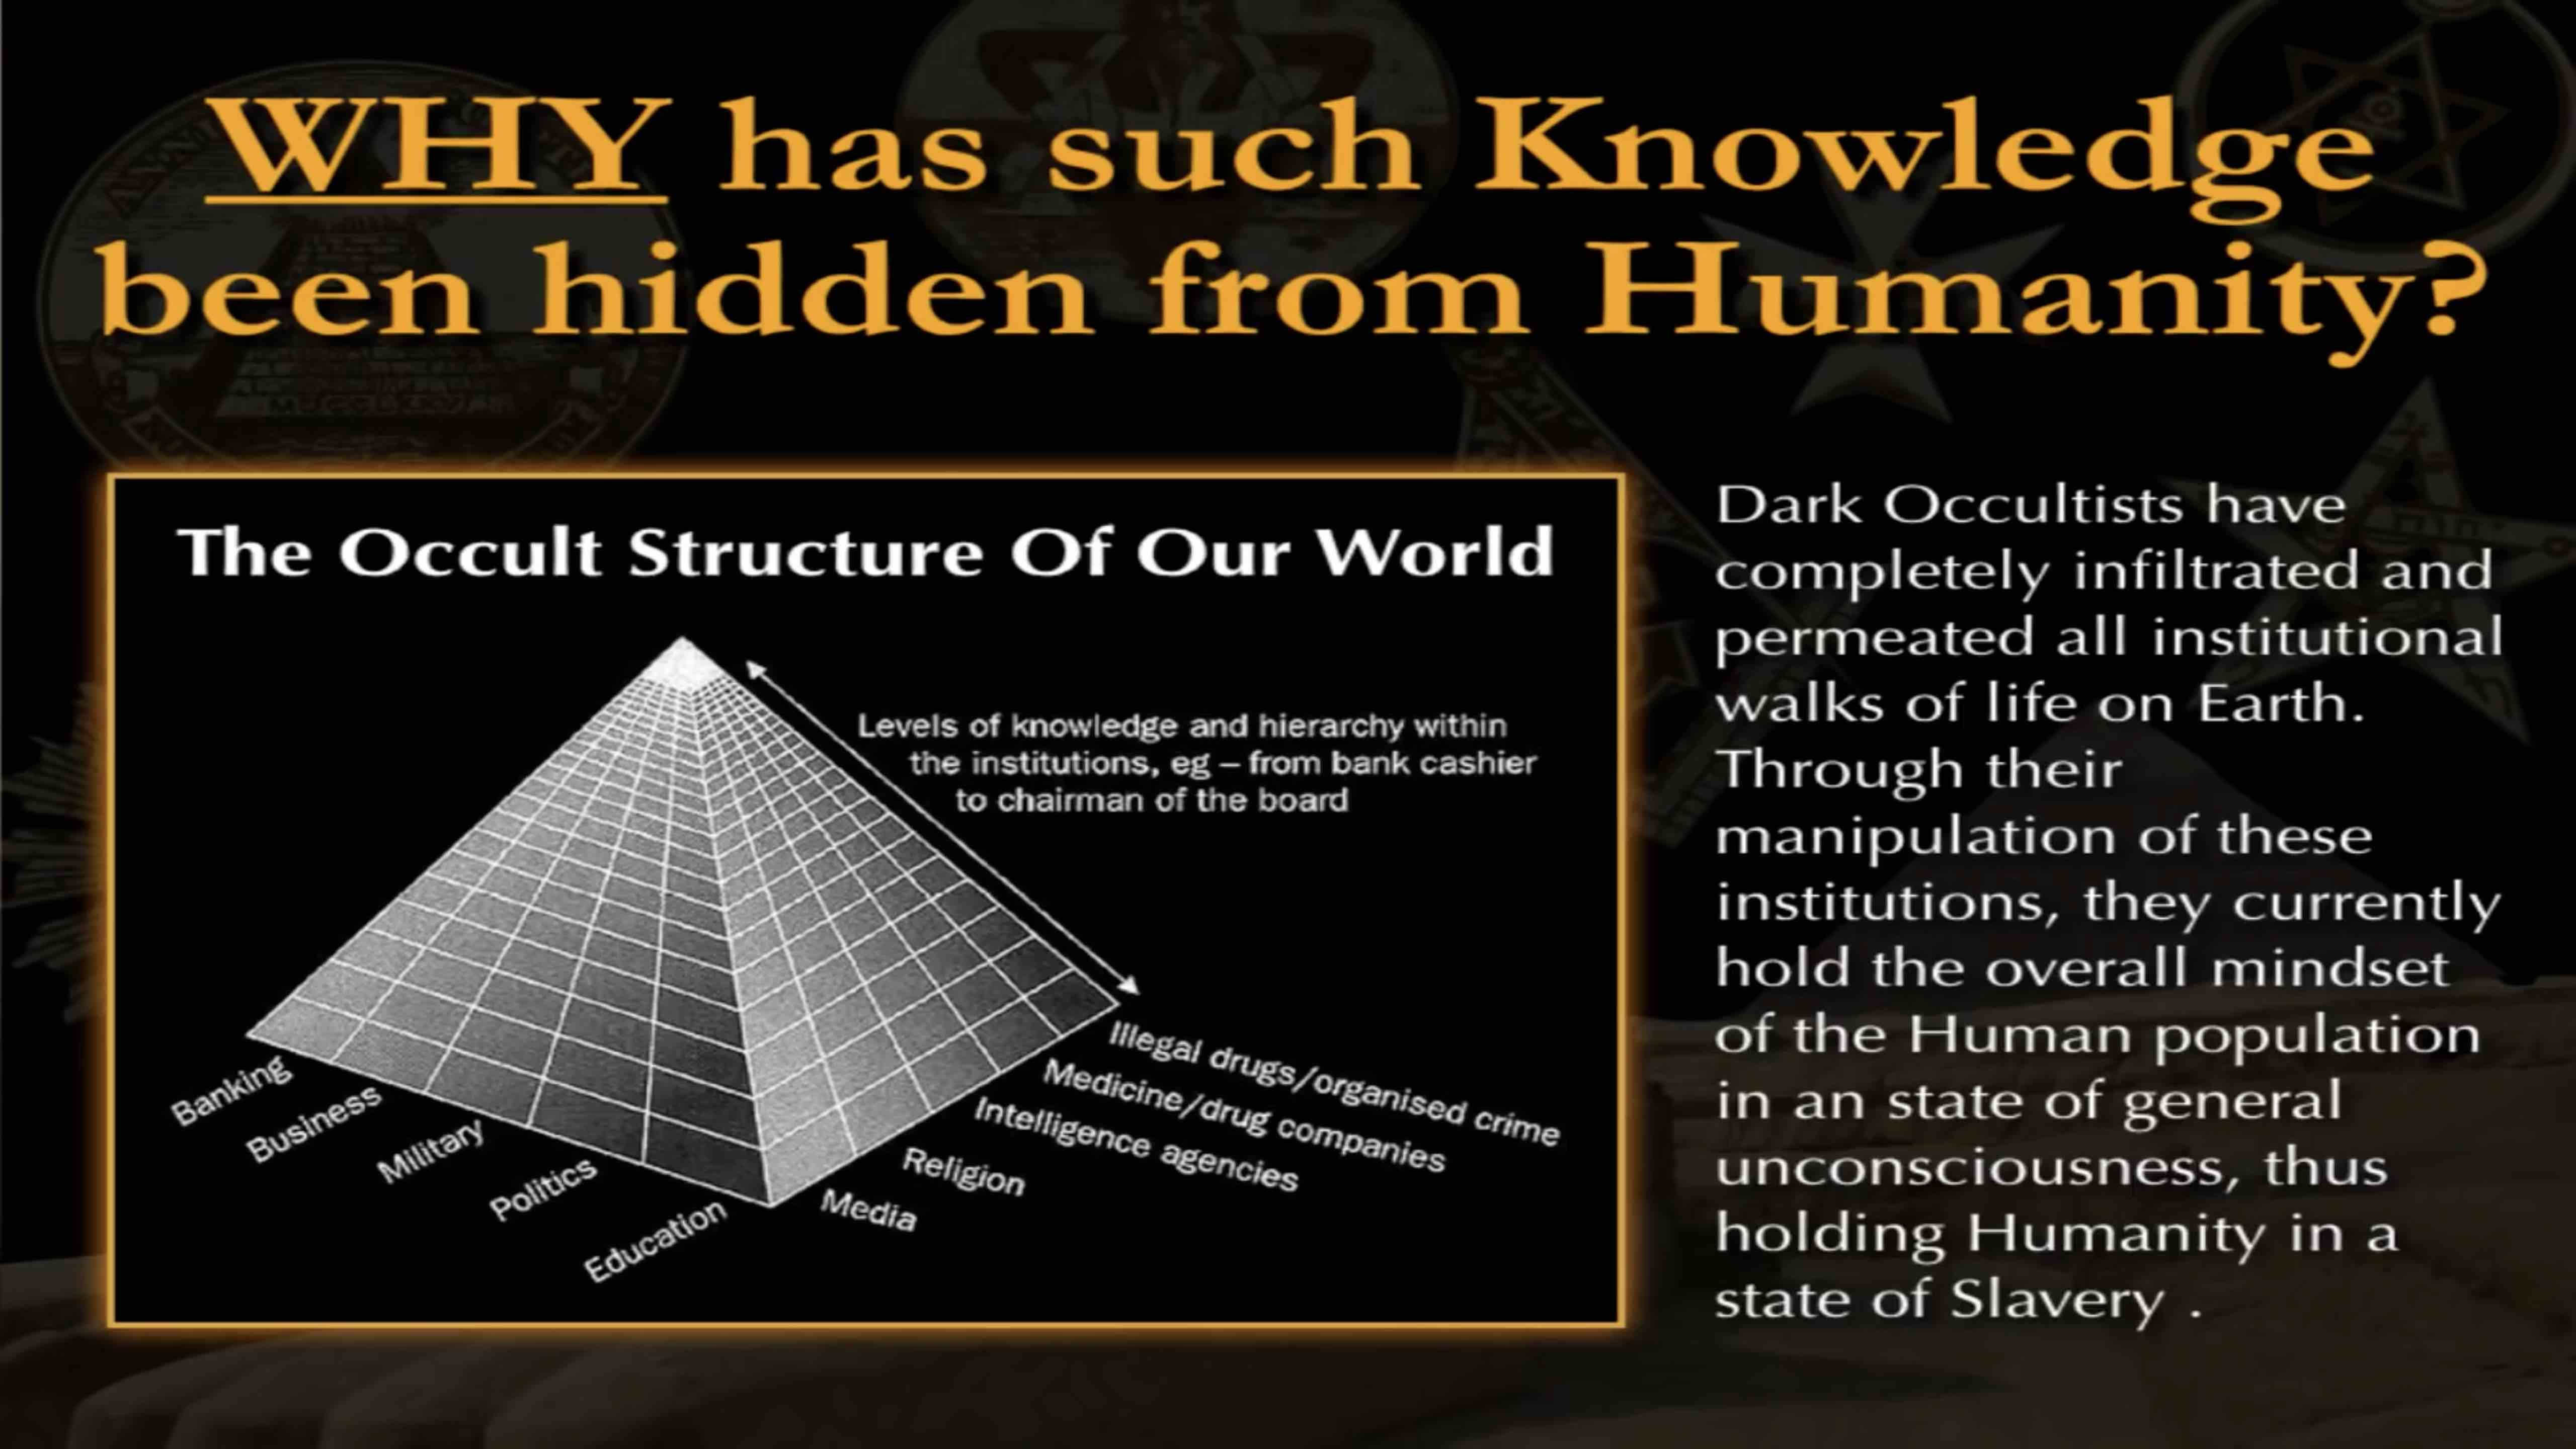 Why is knowledge hidden? De-Mystifying The Occult - Mark Passio